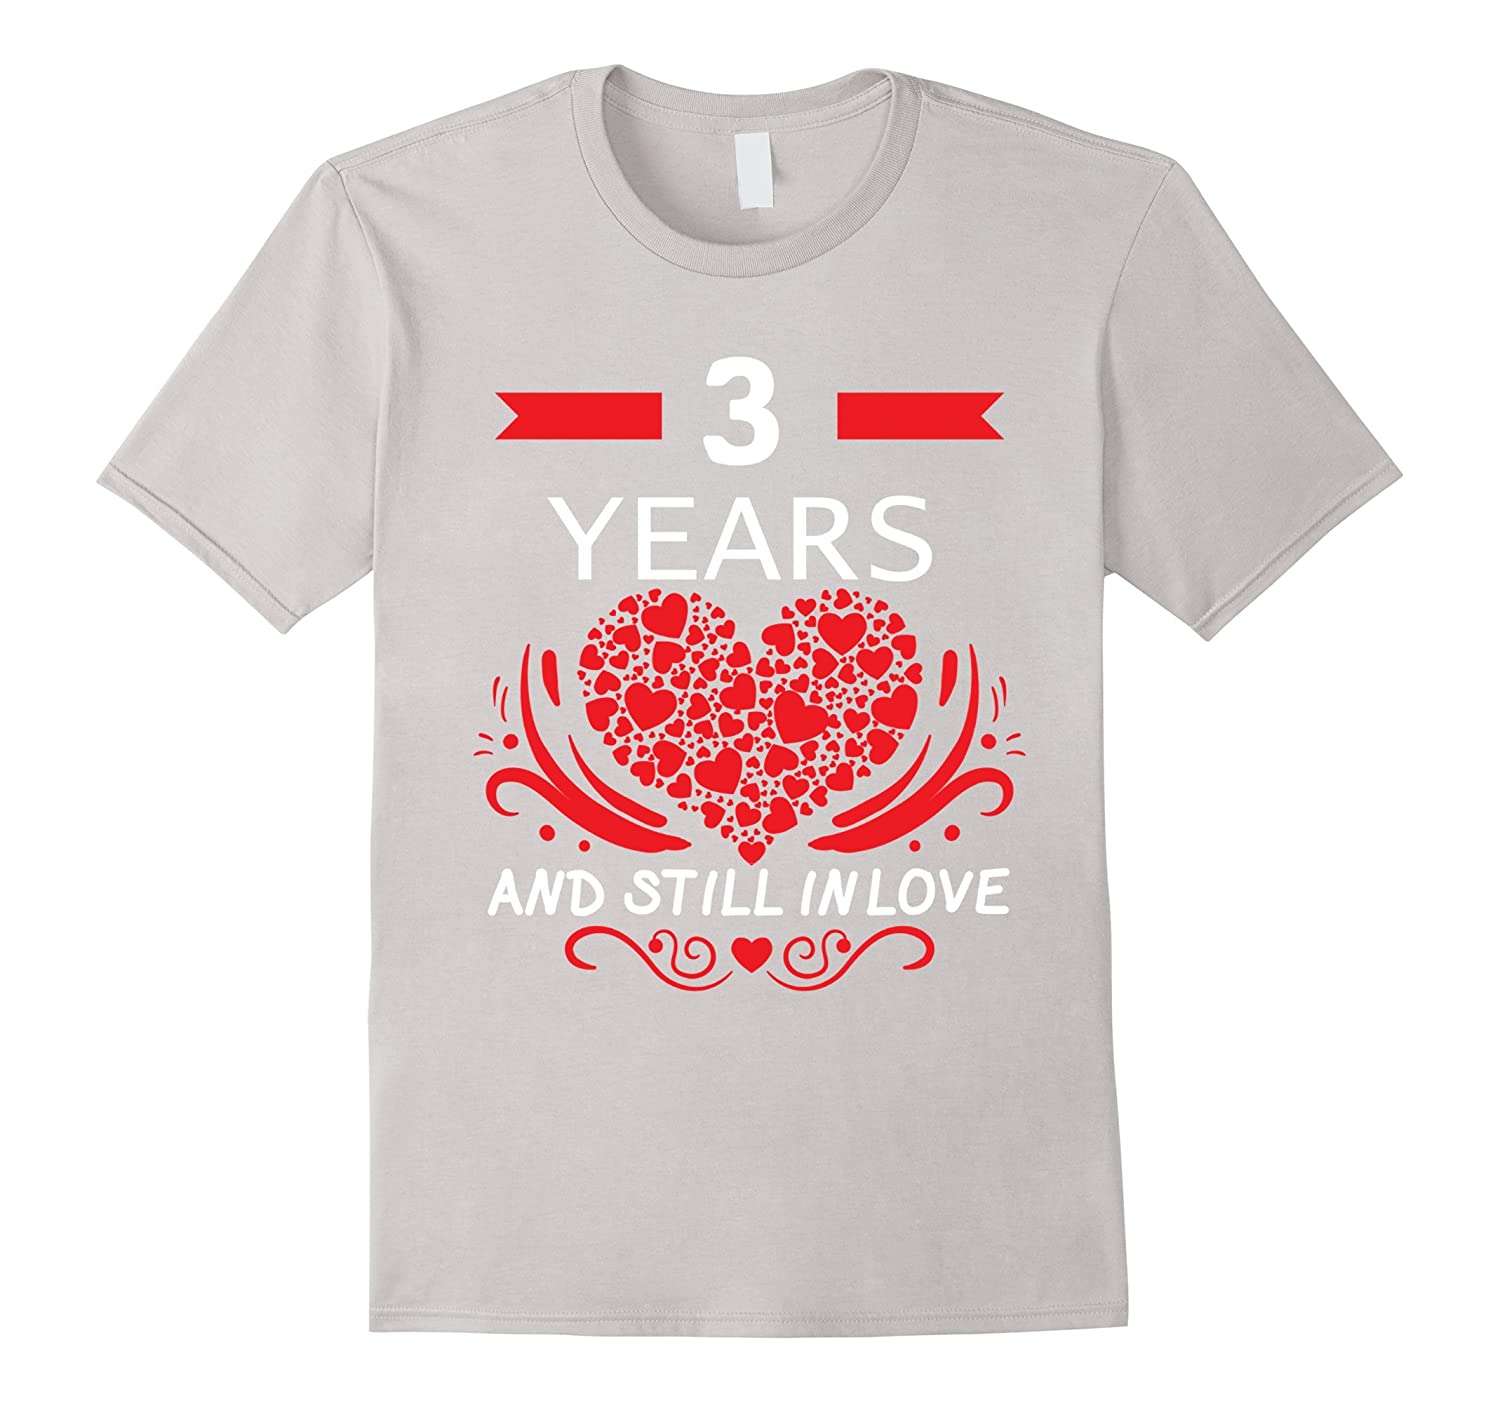 3rd Wedding Anniversary Gifts 3 Year Shirt For Him and Her-RT ...